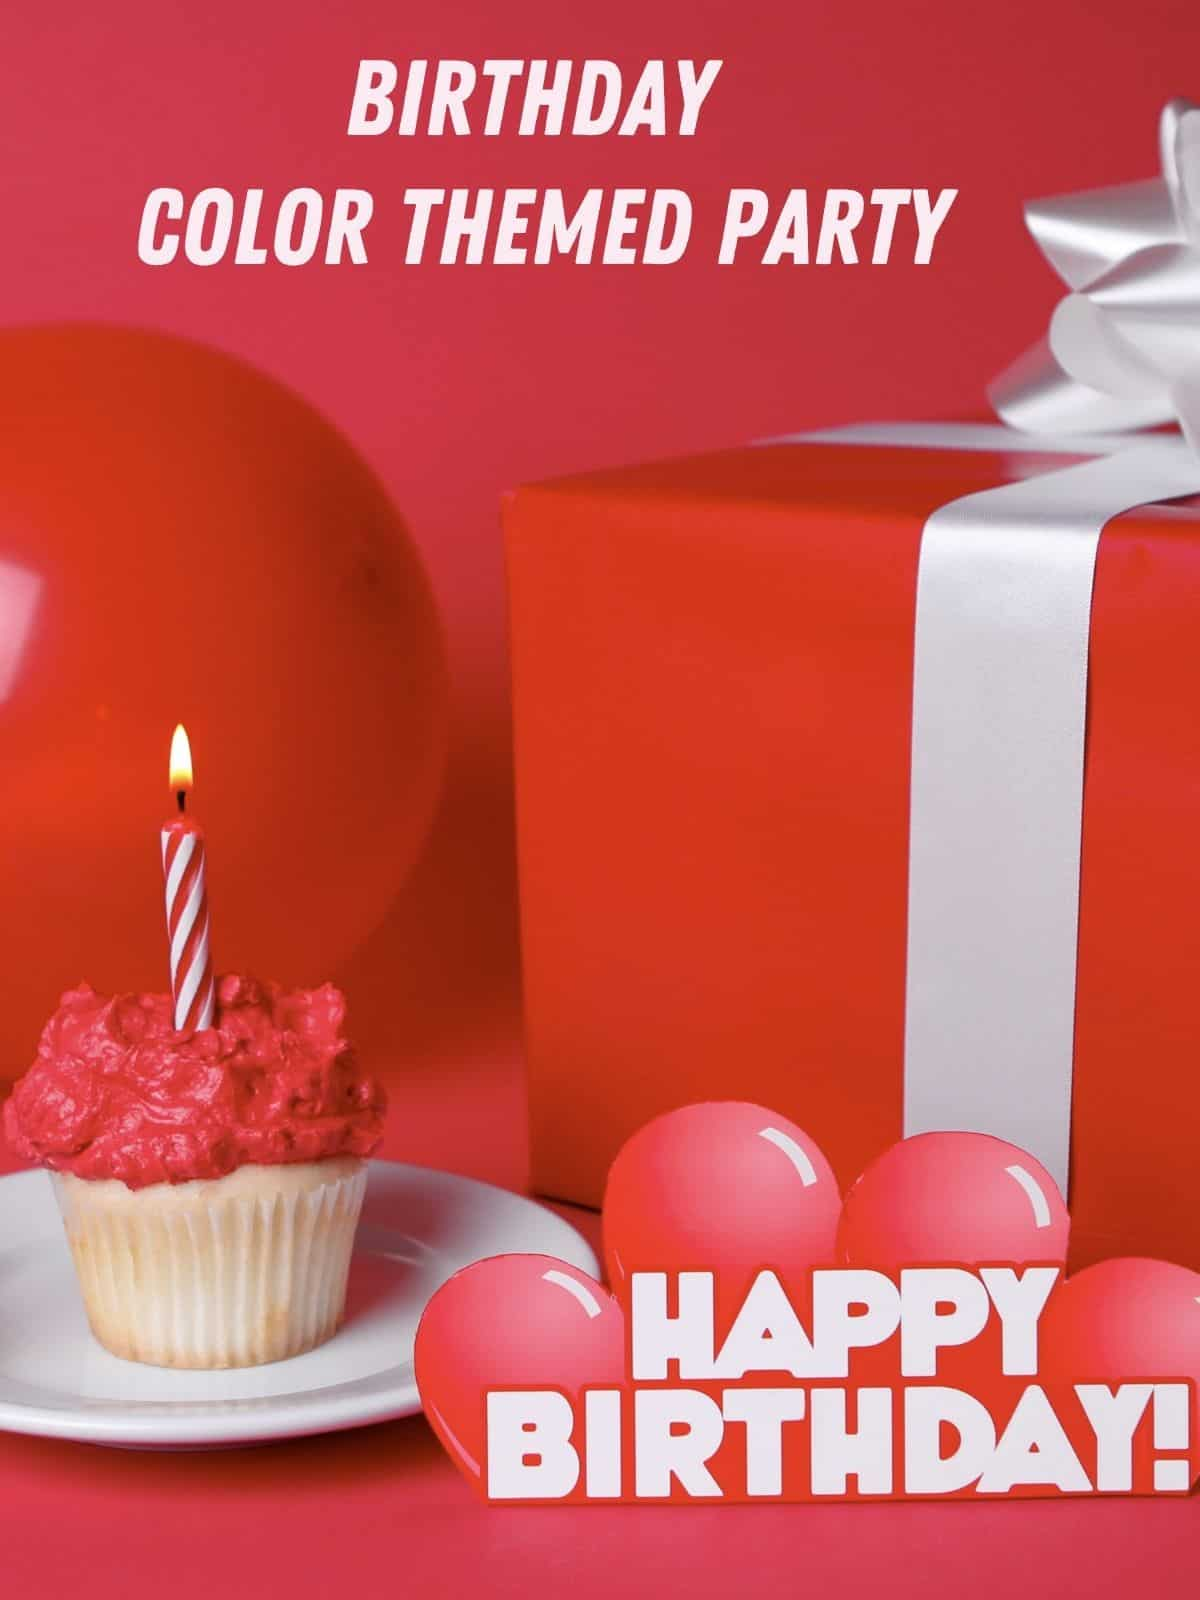 red ballon, package and cupcake for party